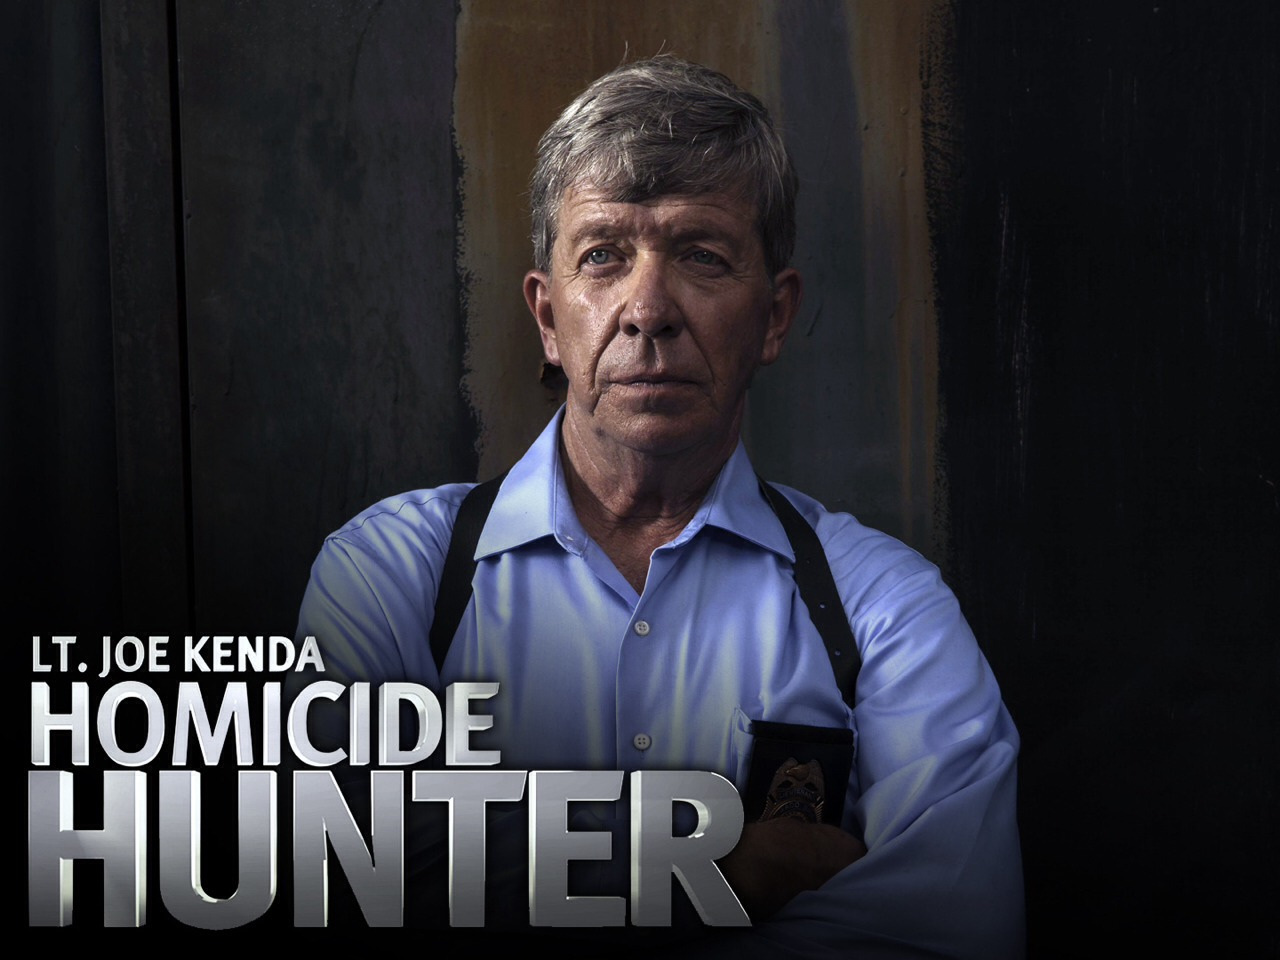 Lt.+Joe+Kenda+Wikipedia ... joe kenda homicide hunter cancelled ...